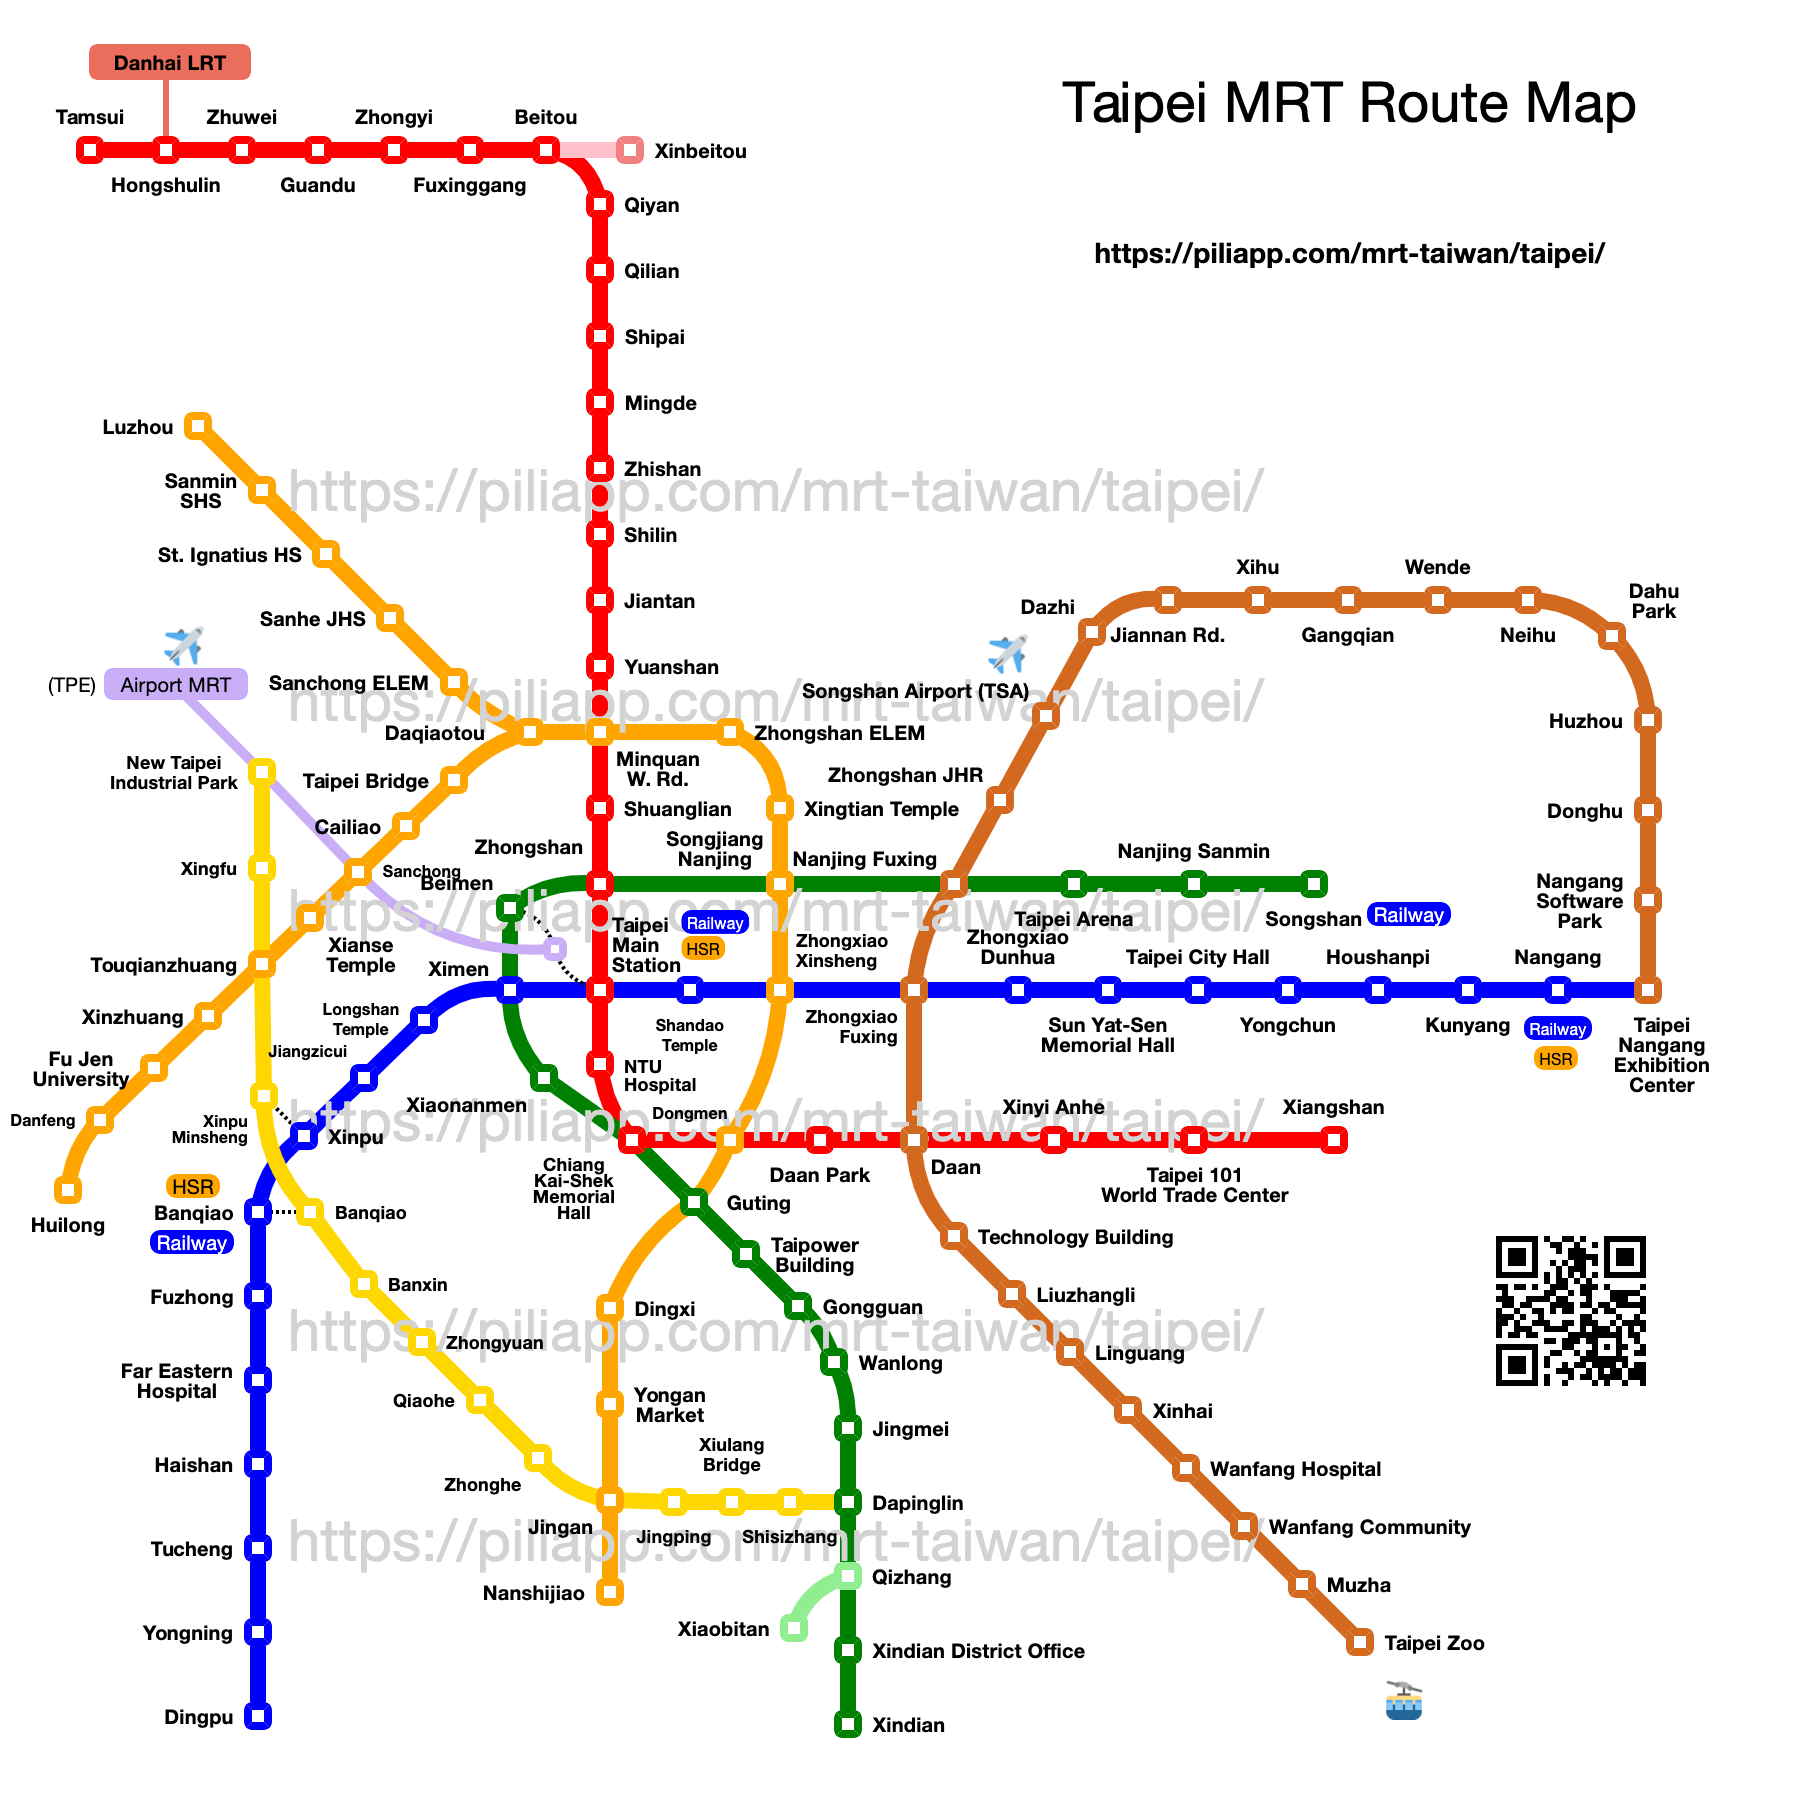 Taipei MRT Roadmap